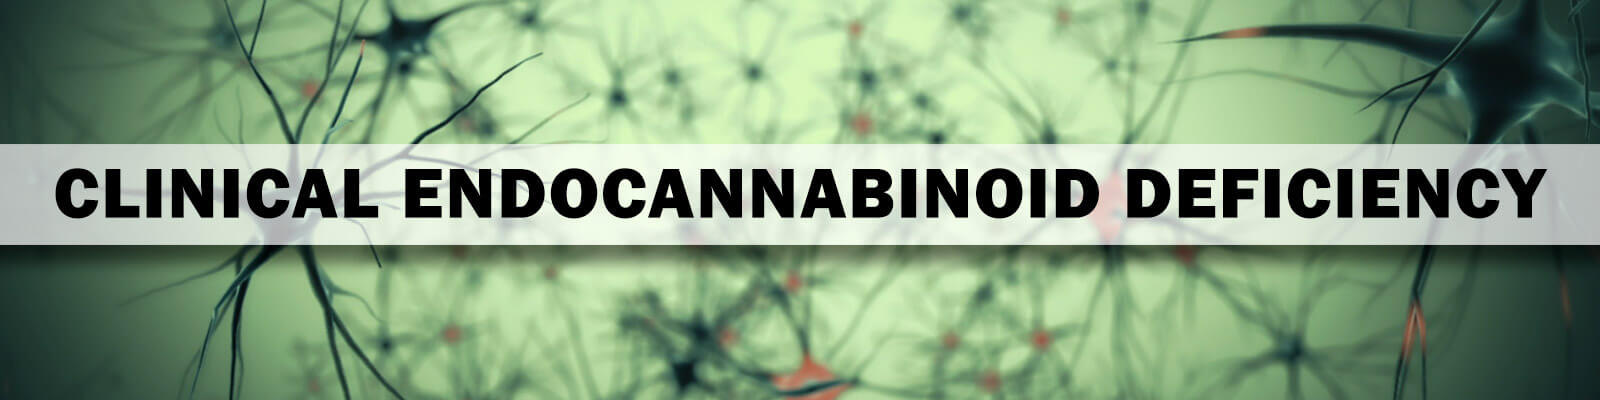 clinical endocannabinoid deficiency banner